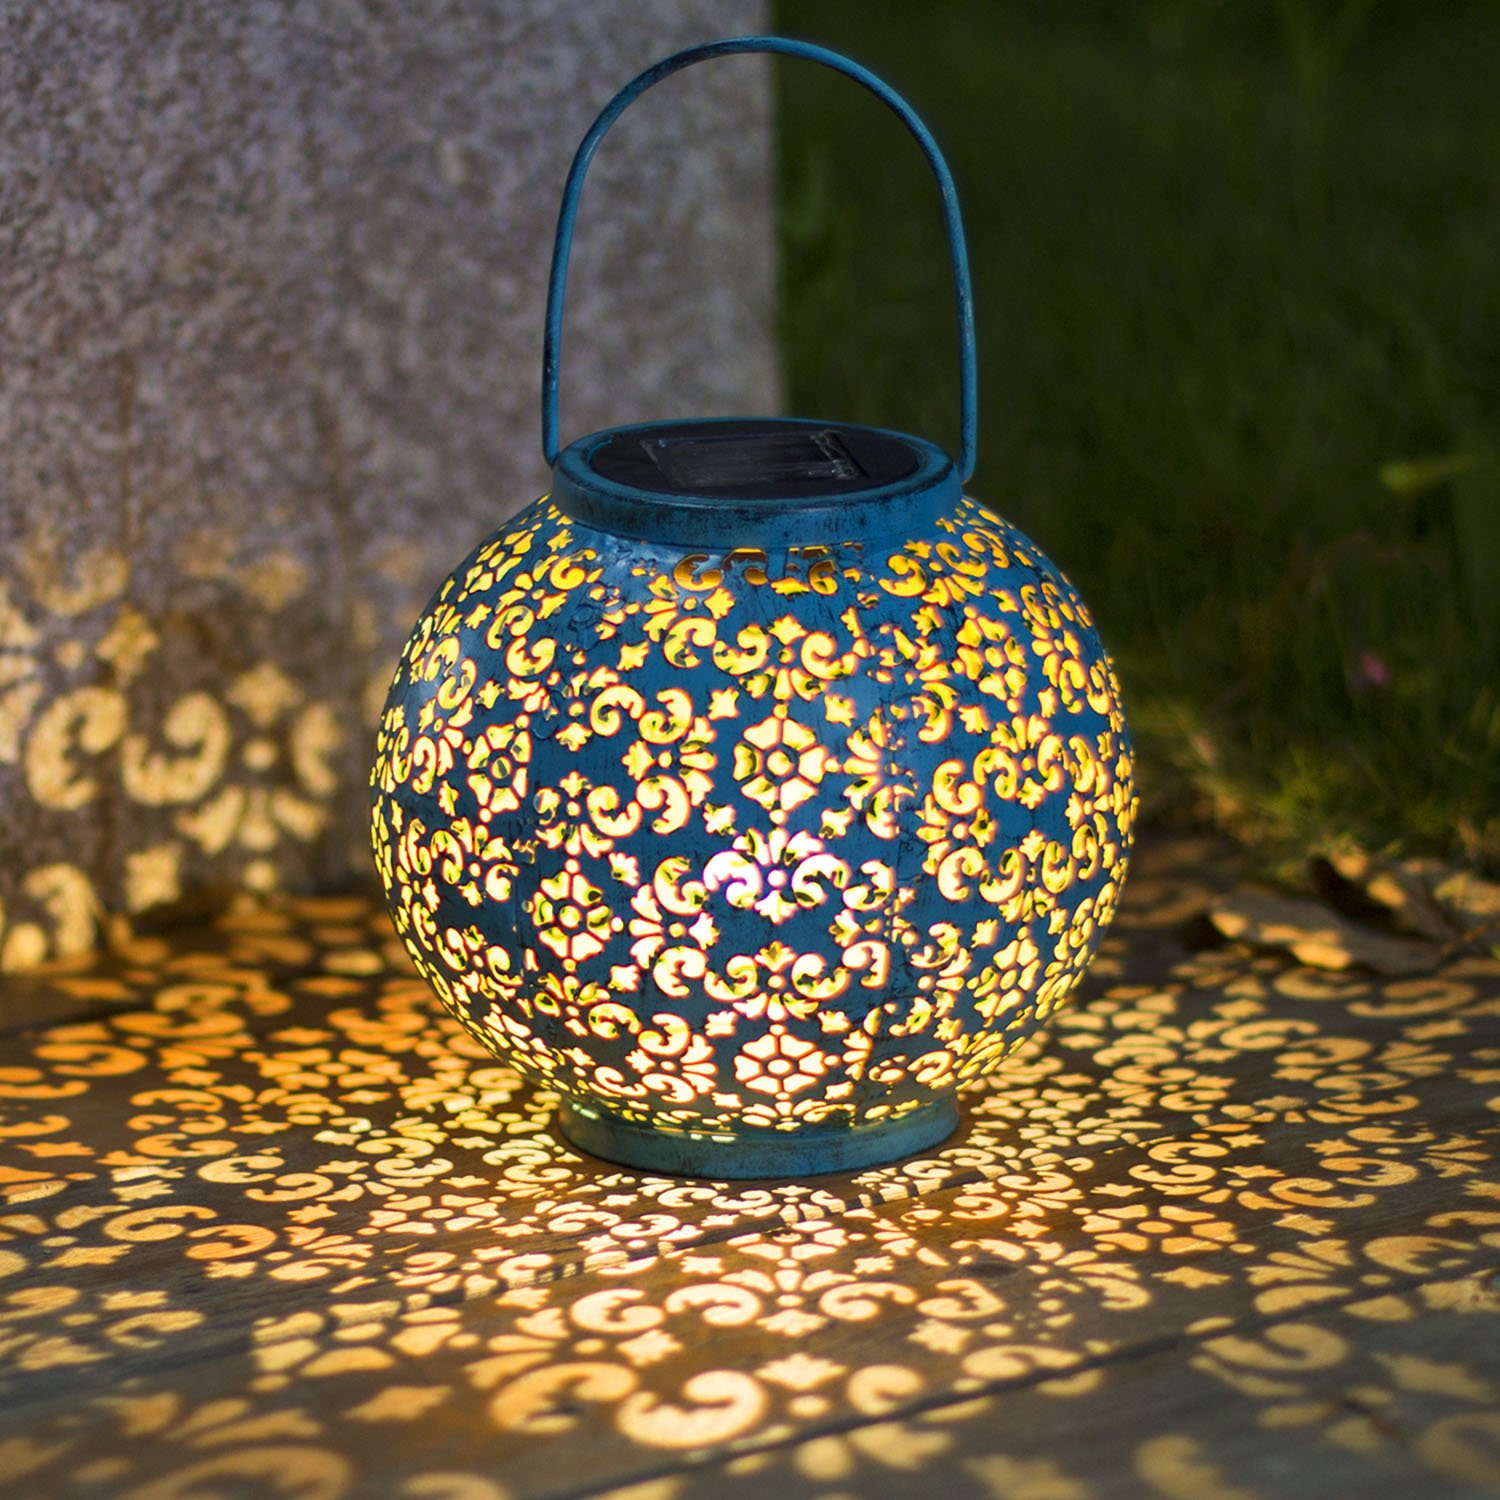 Solar Lantern Hanging Garden Outdoor Lights Metal Waterproof LED Table Lamp Decorative by Homeimpro